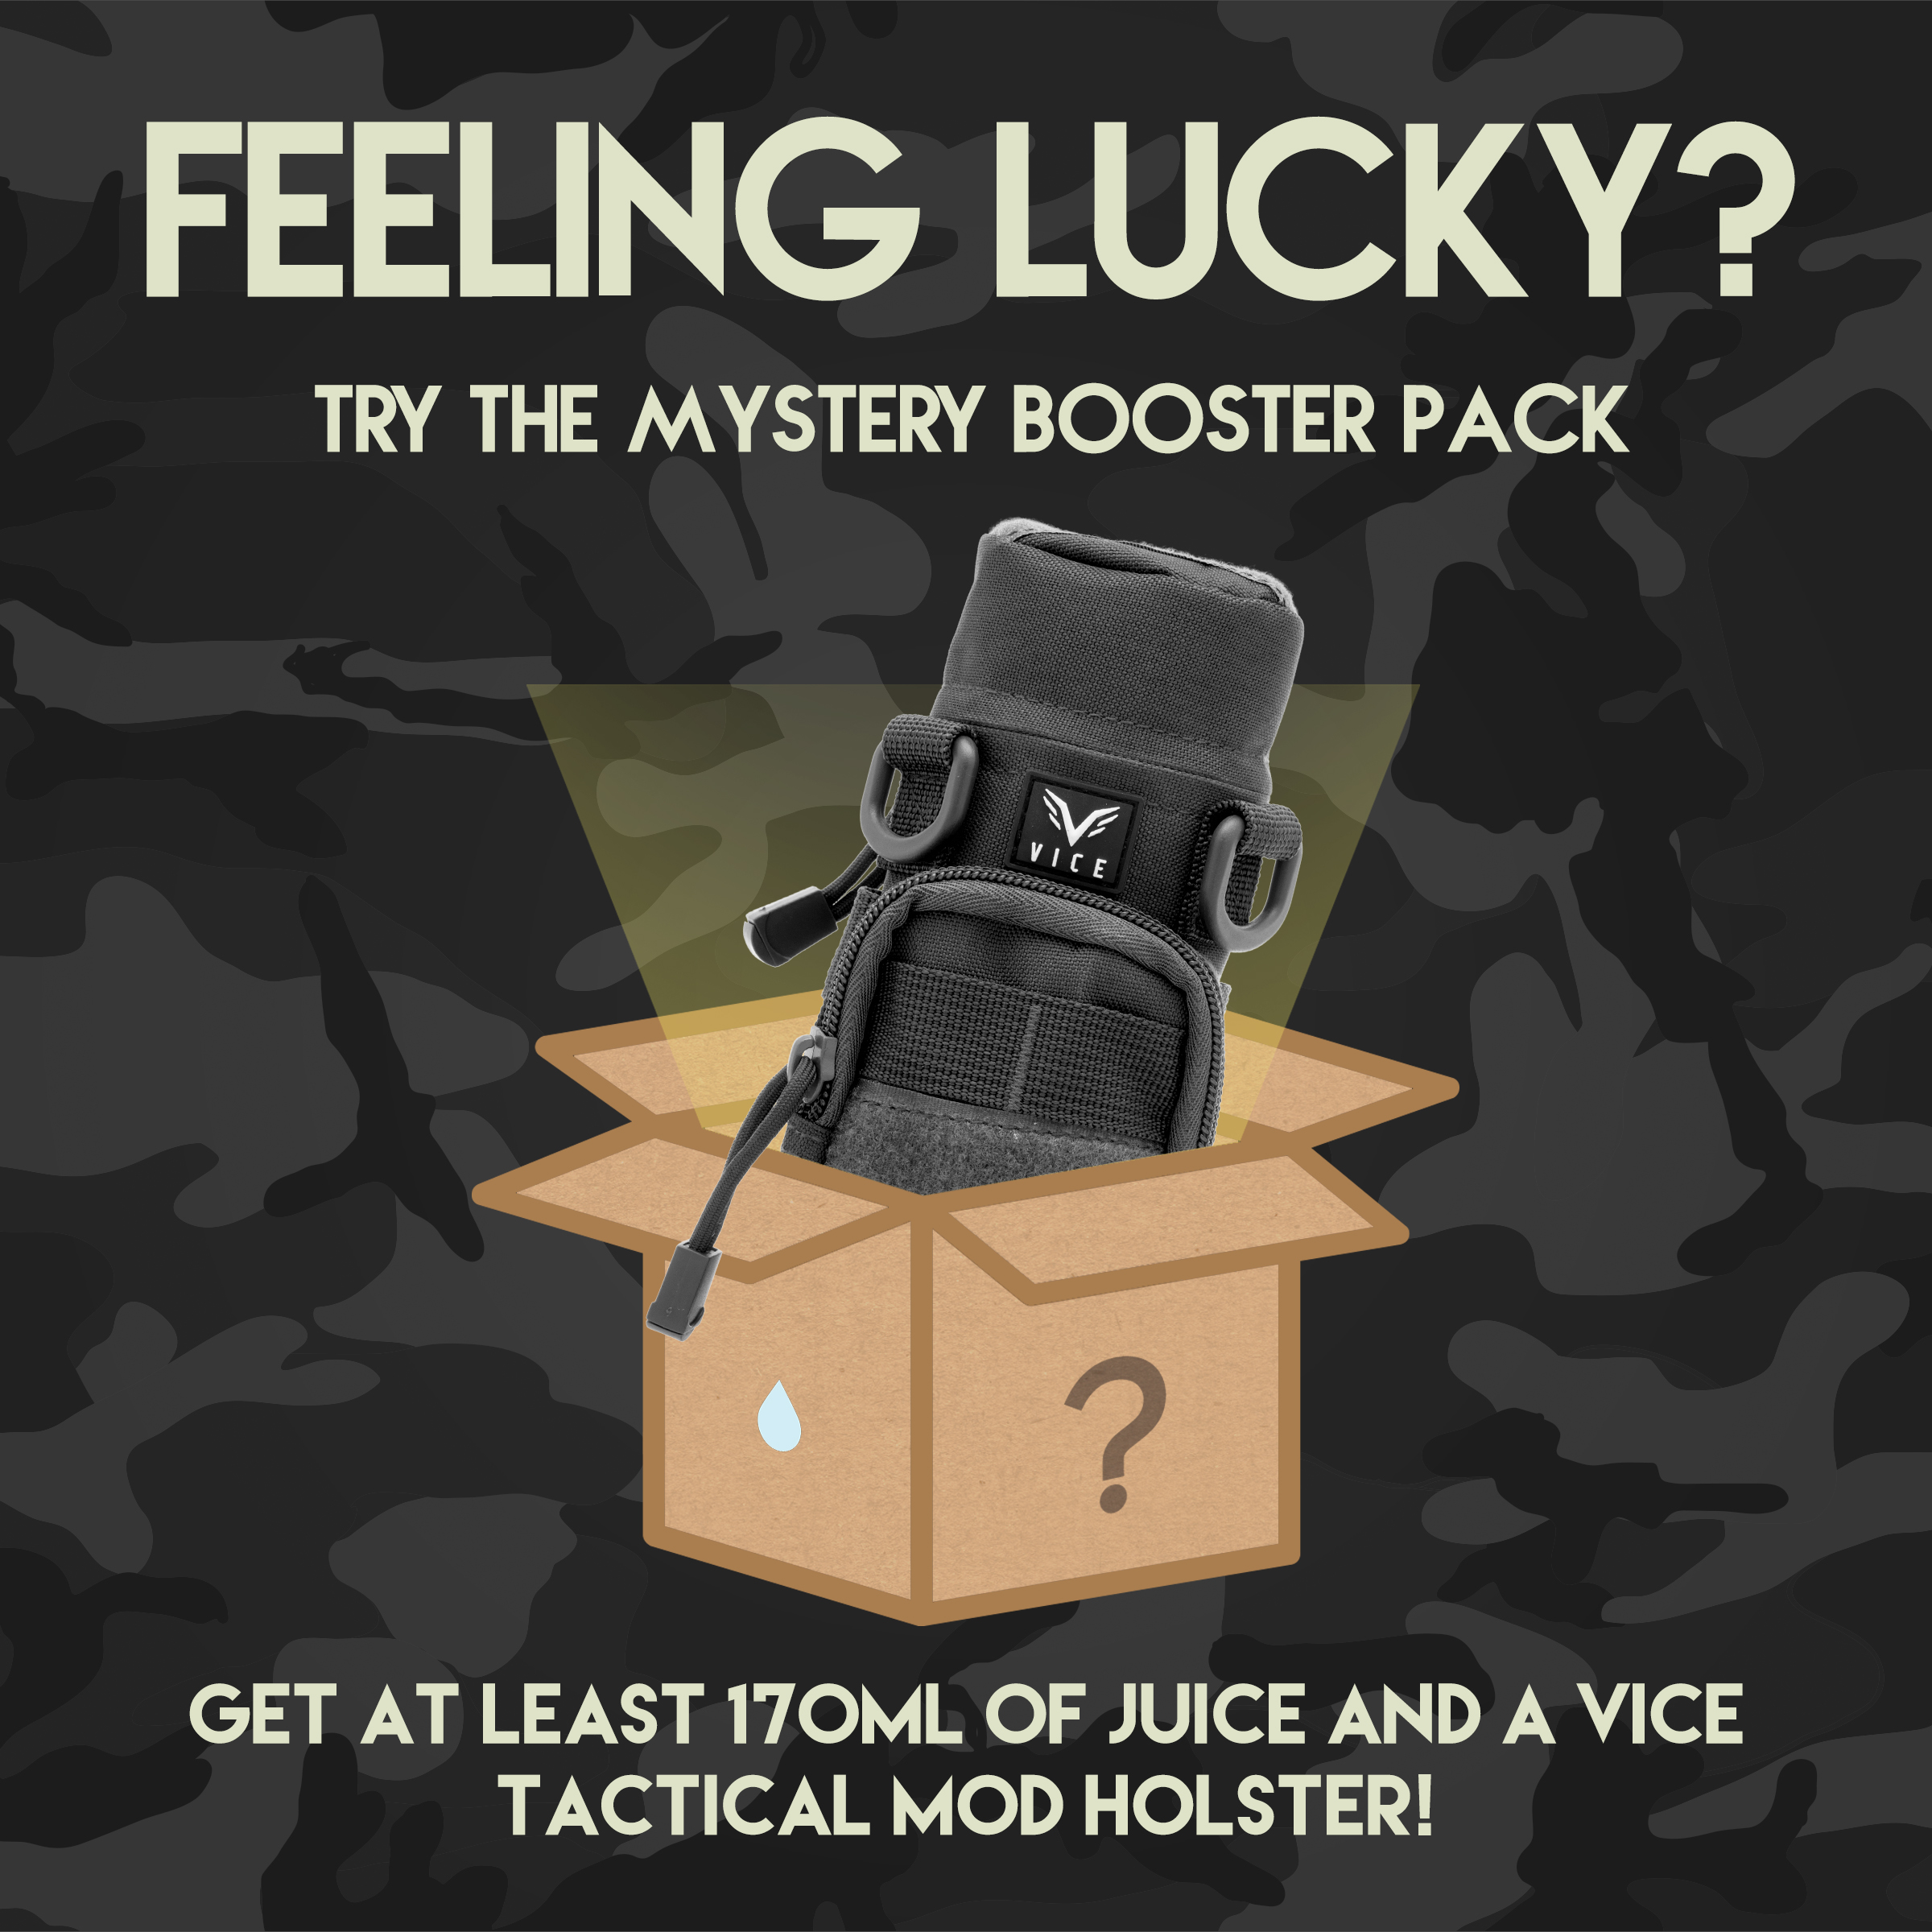 Booster 170mL+! Plus FREE MOD HOLSTER!  Photo